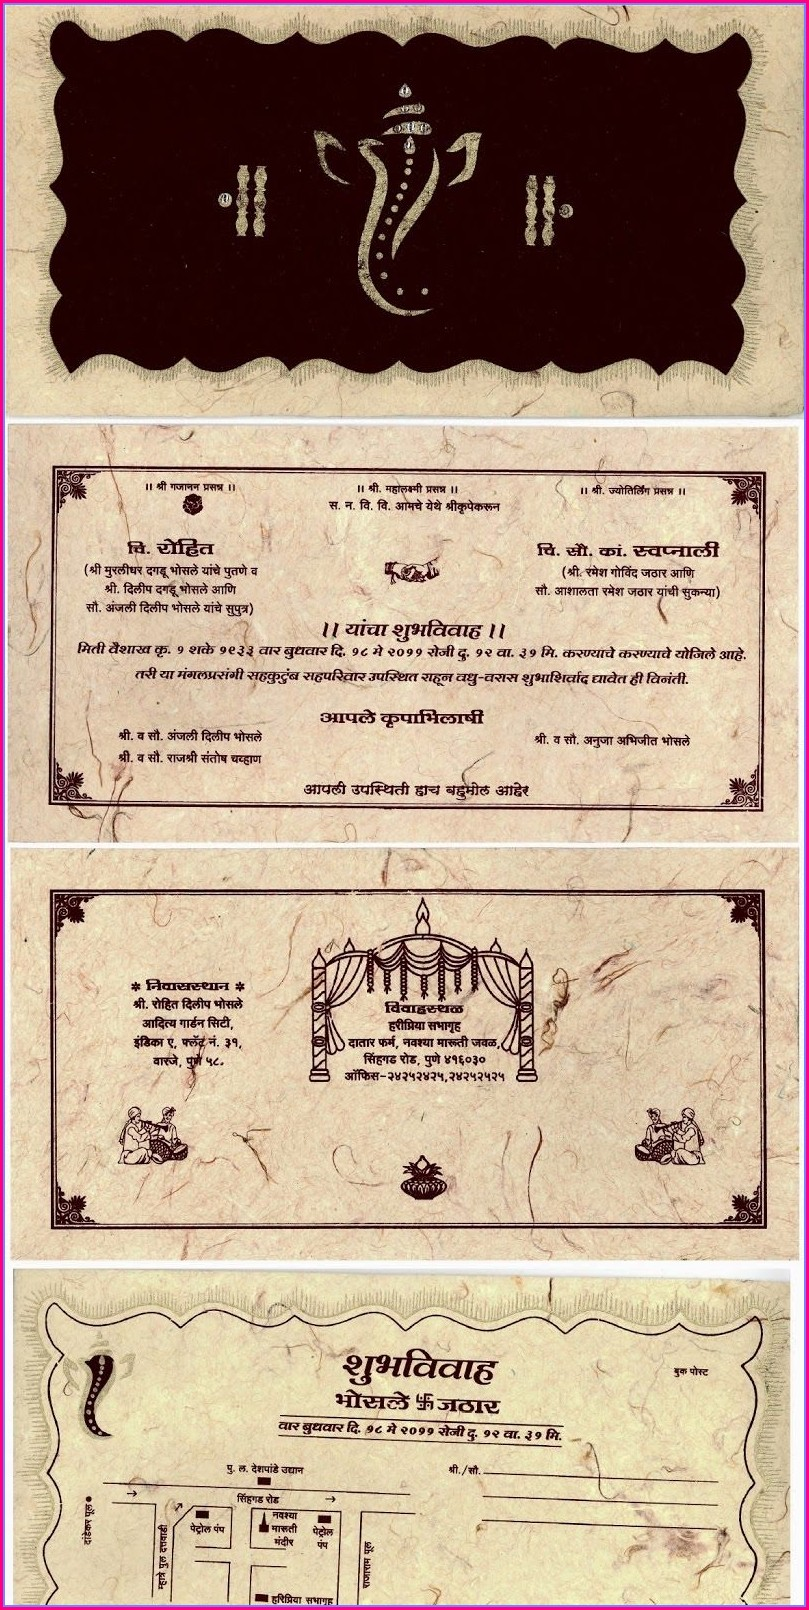 Hindu Wedding Invitation Card Format In Marathi